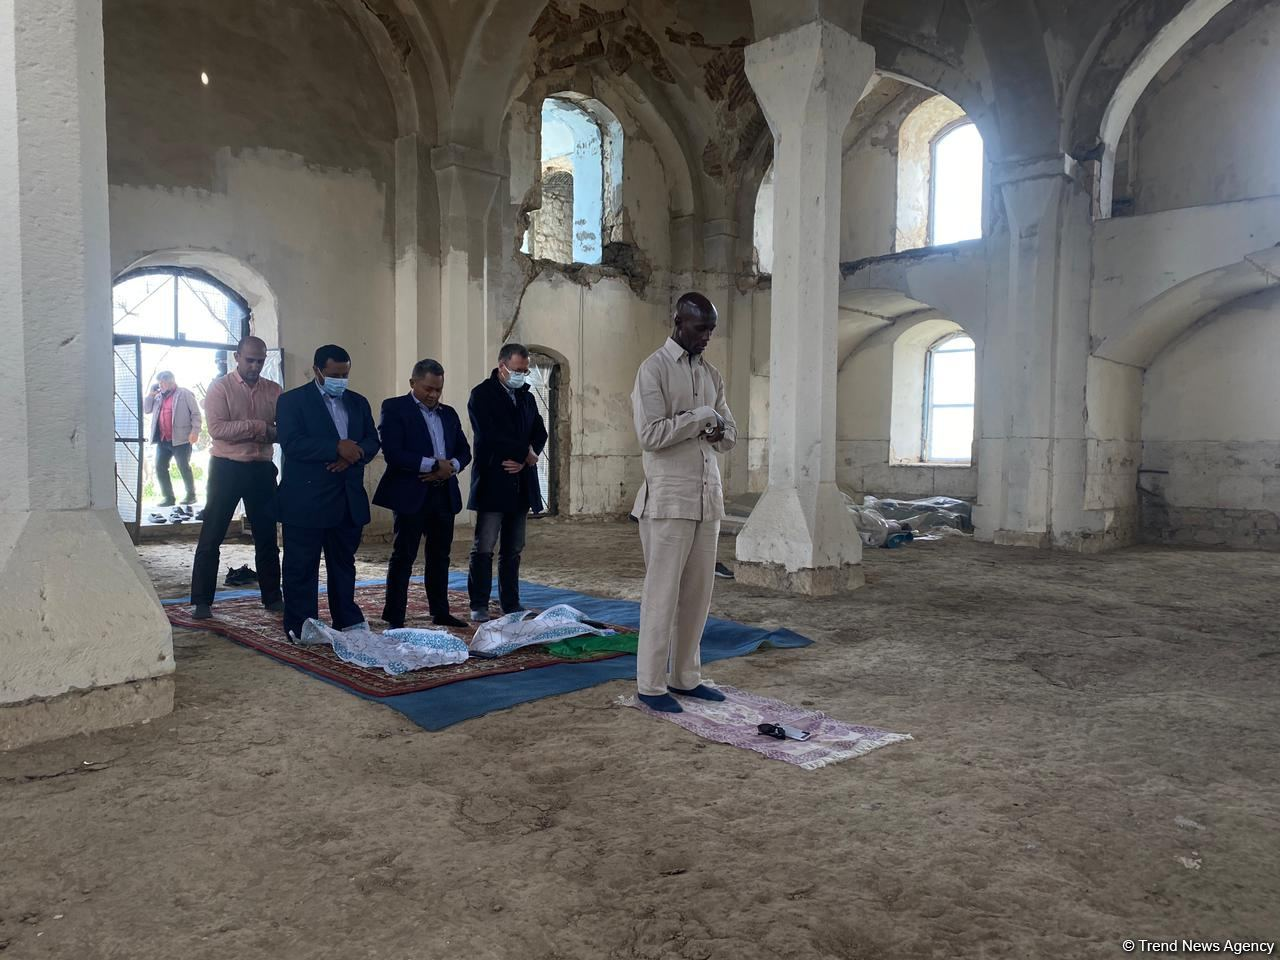 OIC reps pray in Juma Mosque during visit to Azerbaijan's Aghdam district